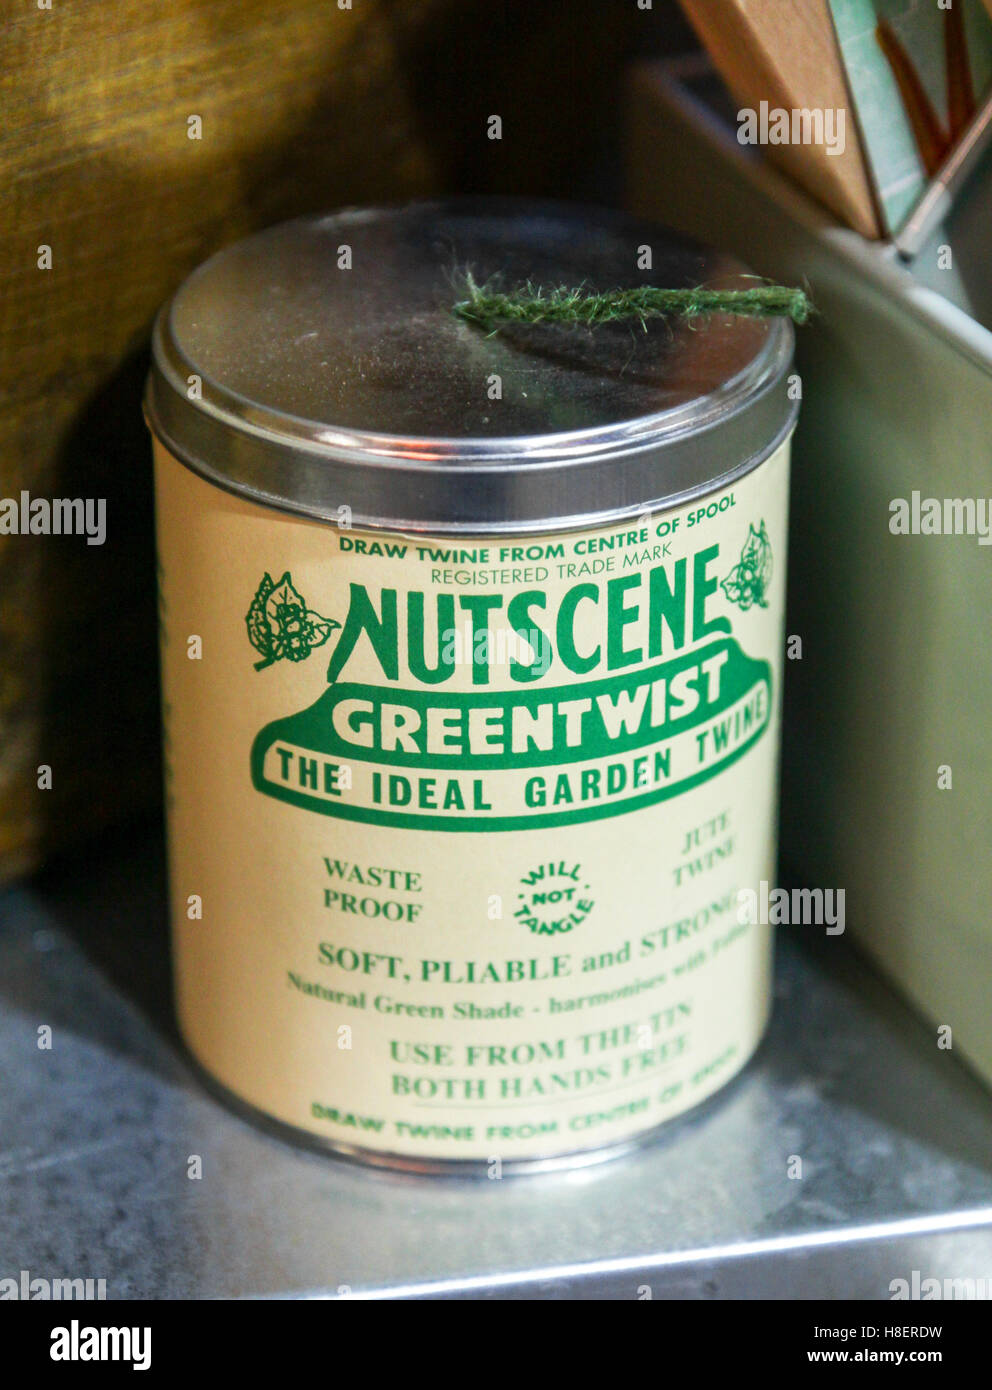 A tin of 'Nutscene' green twist garden twine - Stock Image